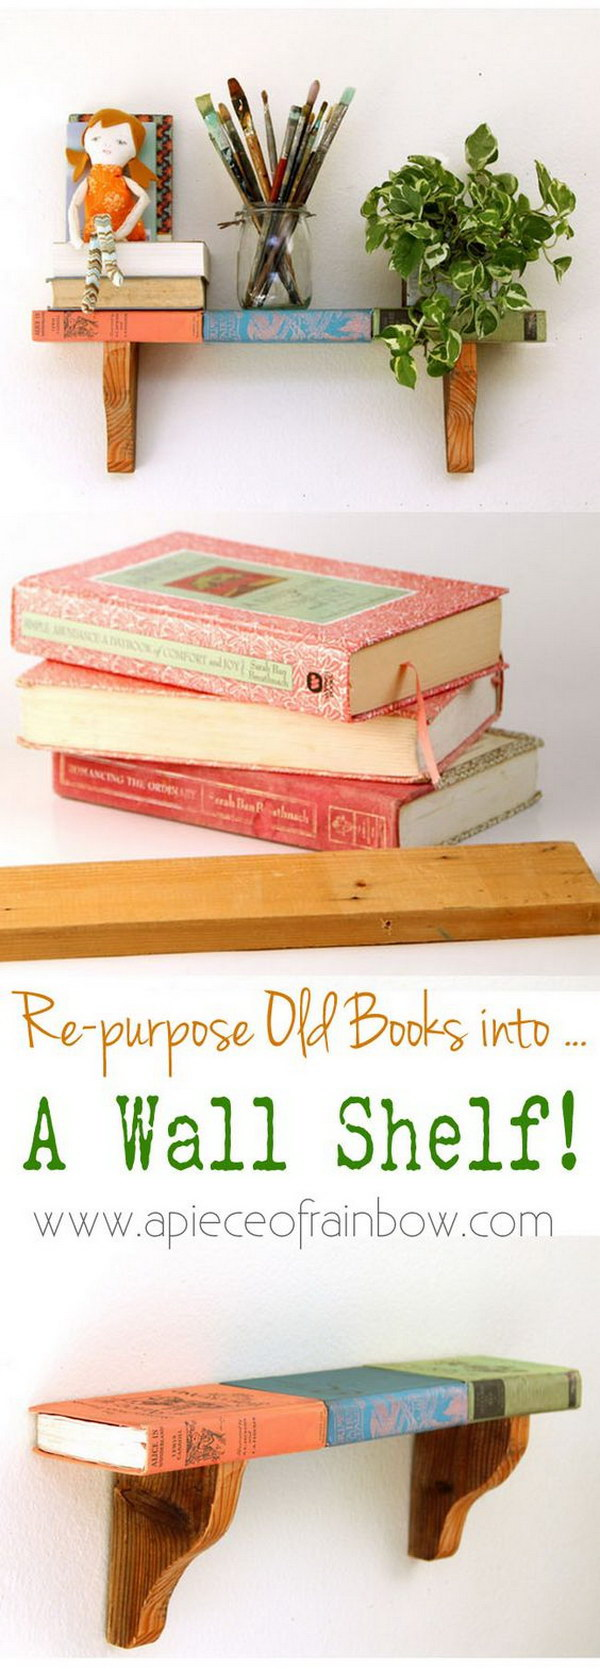 11 Wall Shelf From Faux Vintage Books